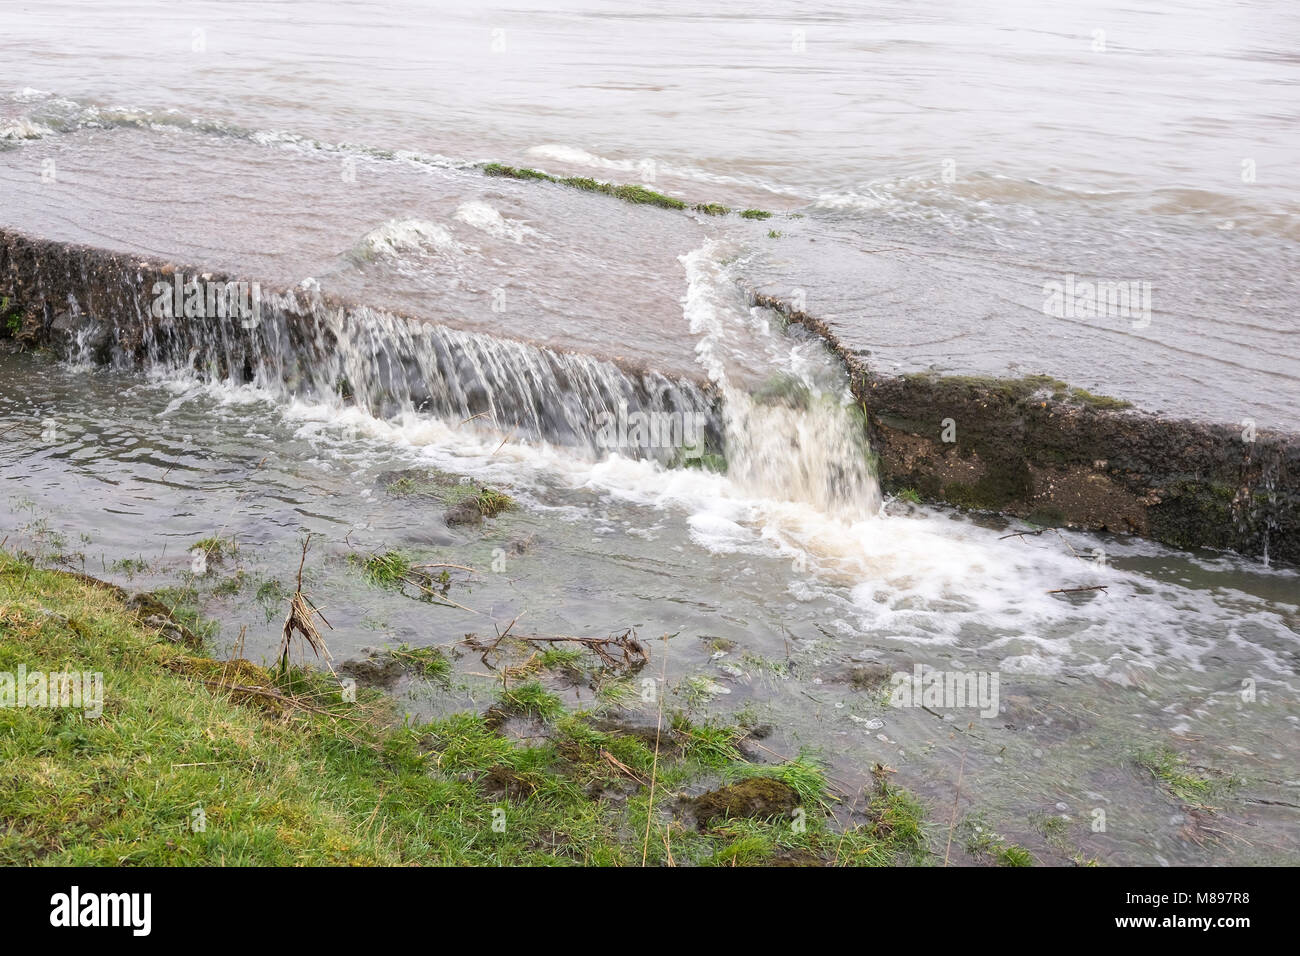 Flood water pouring in at Sawley Weir, Derbyshire, UK - Stock Image